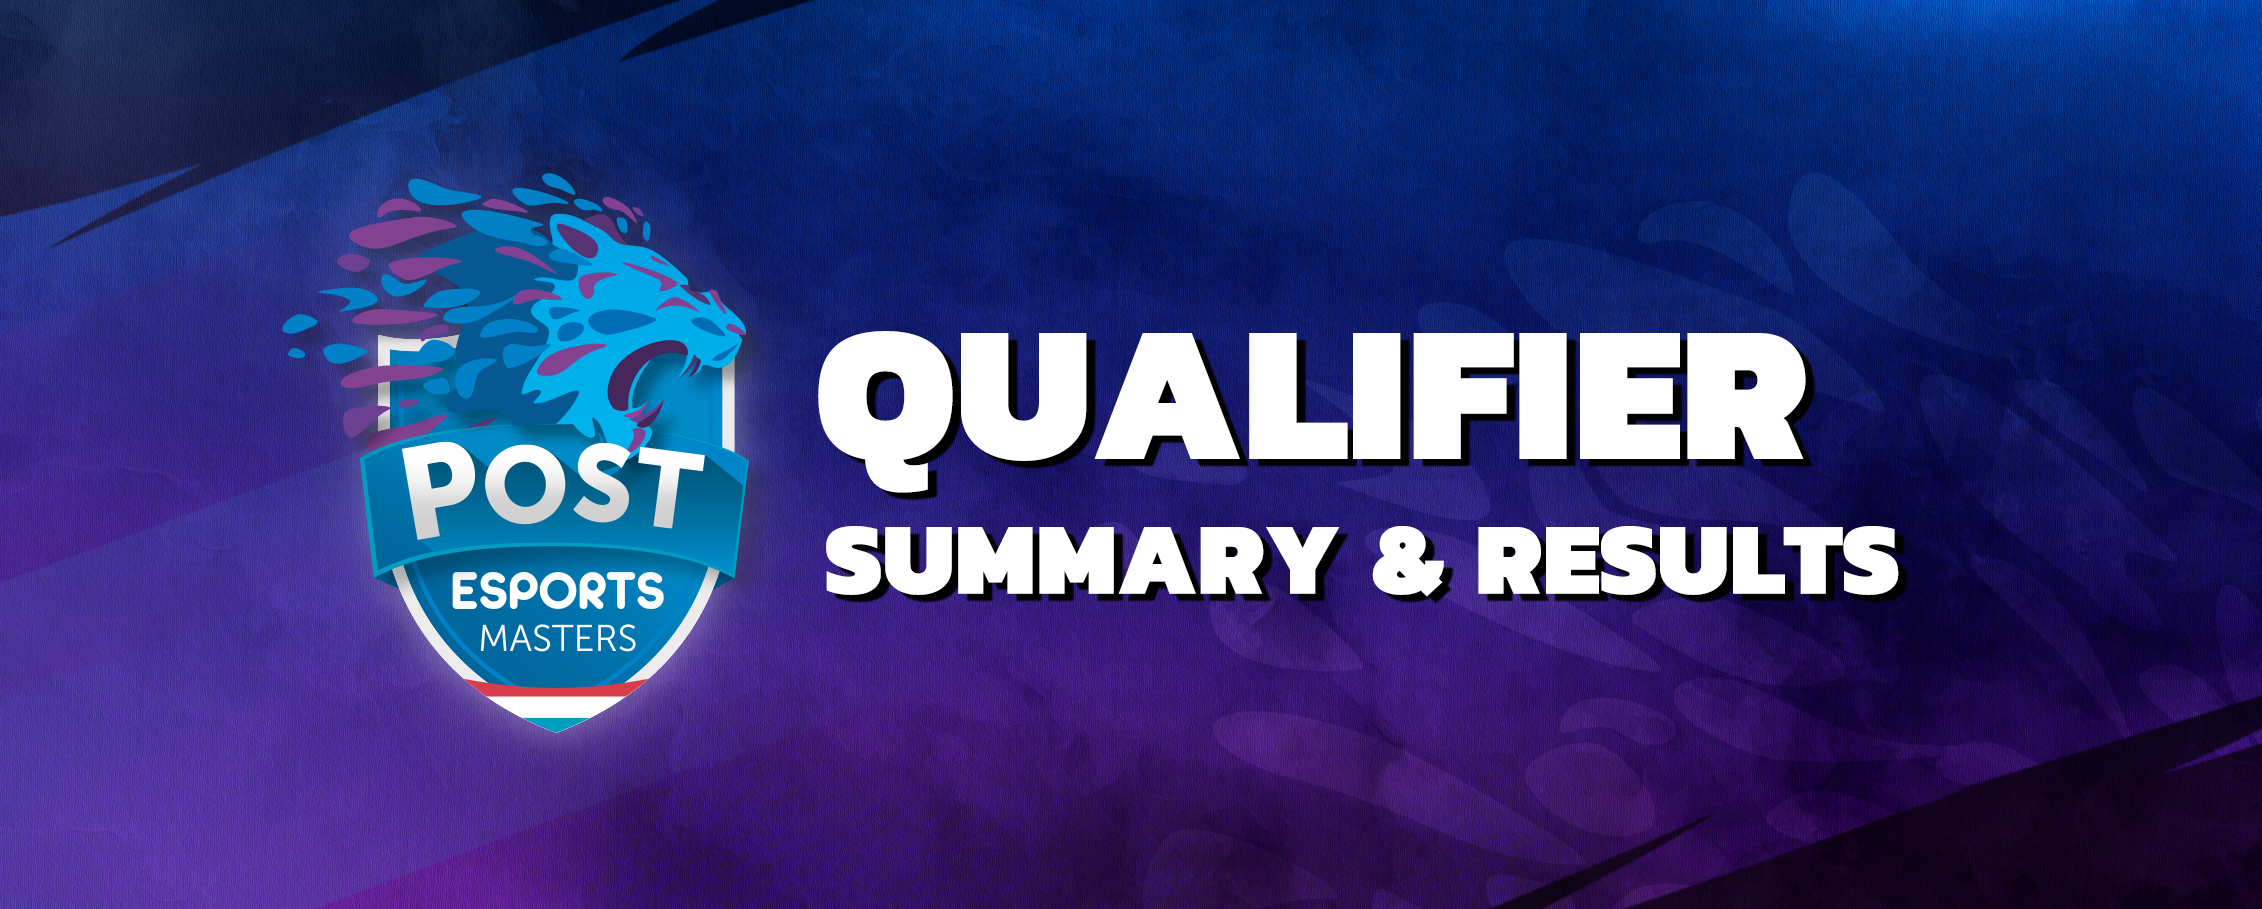 VISU ARTICLE - QUALIFIERS RESULTS